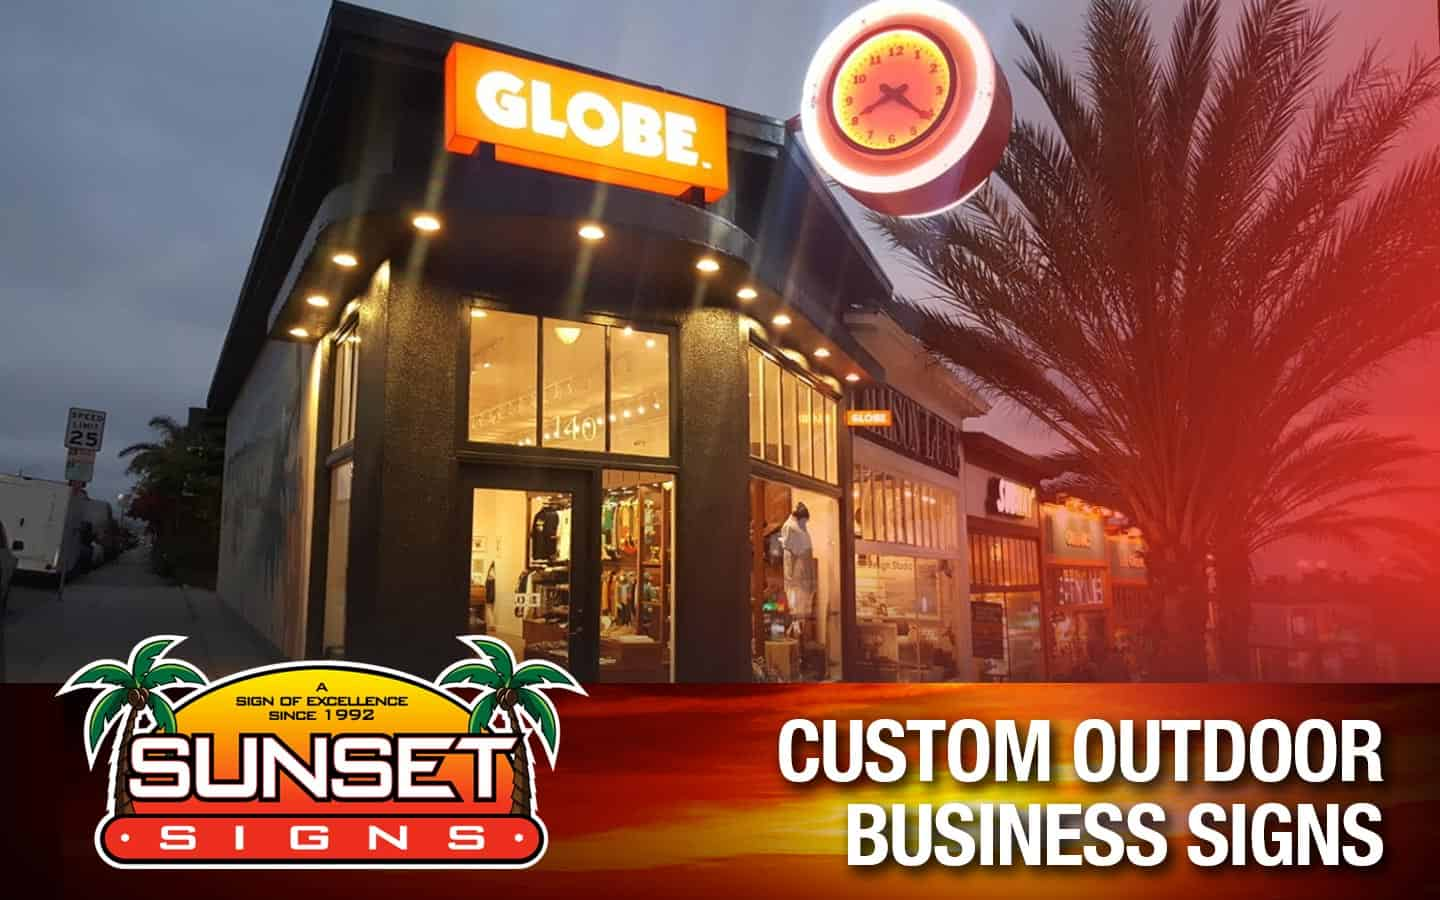 Custom Outdoor Business Signs